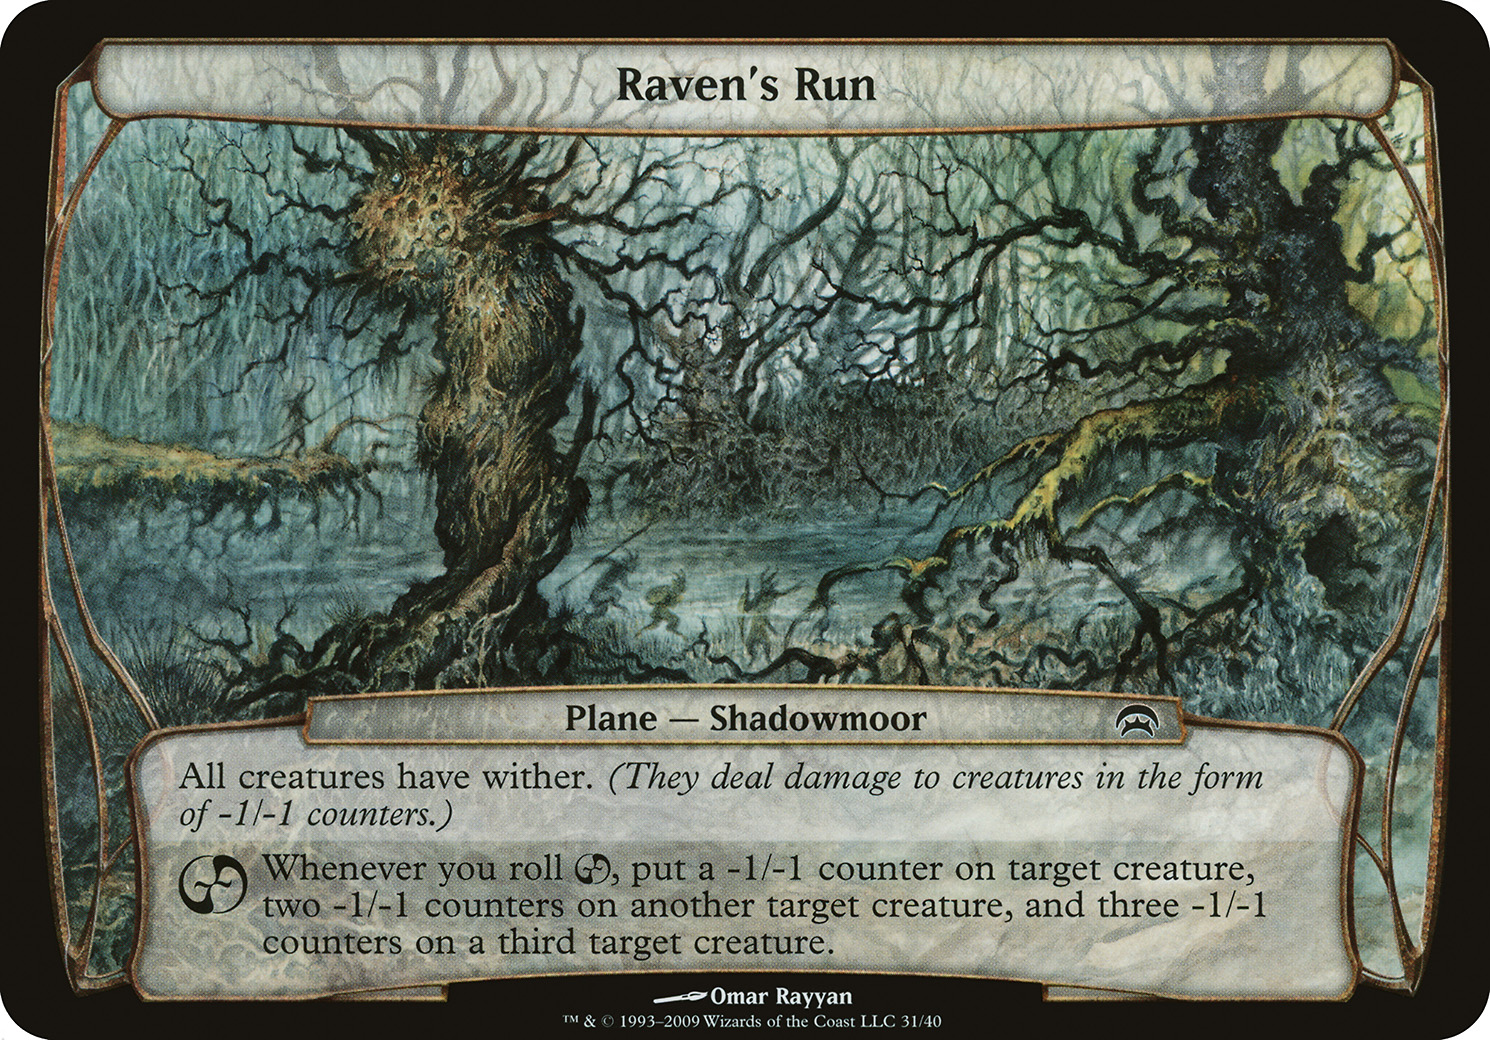 Raven's Run Magic The Gathering: How To Build A Prerelease Deck